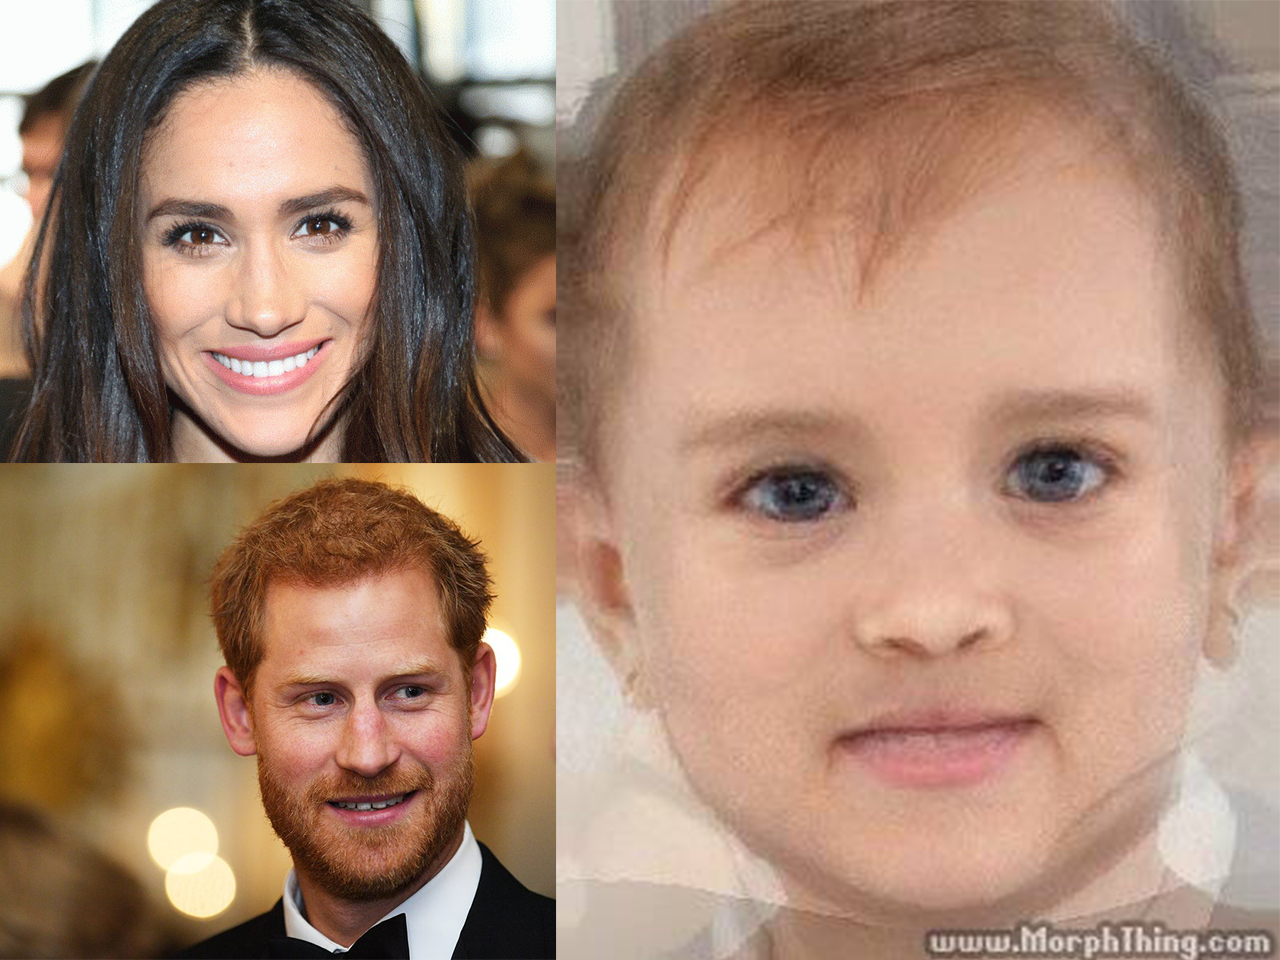 This is what Prince Harry and Meghan Markle's baby will look like